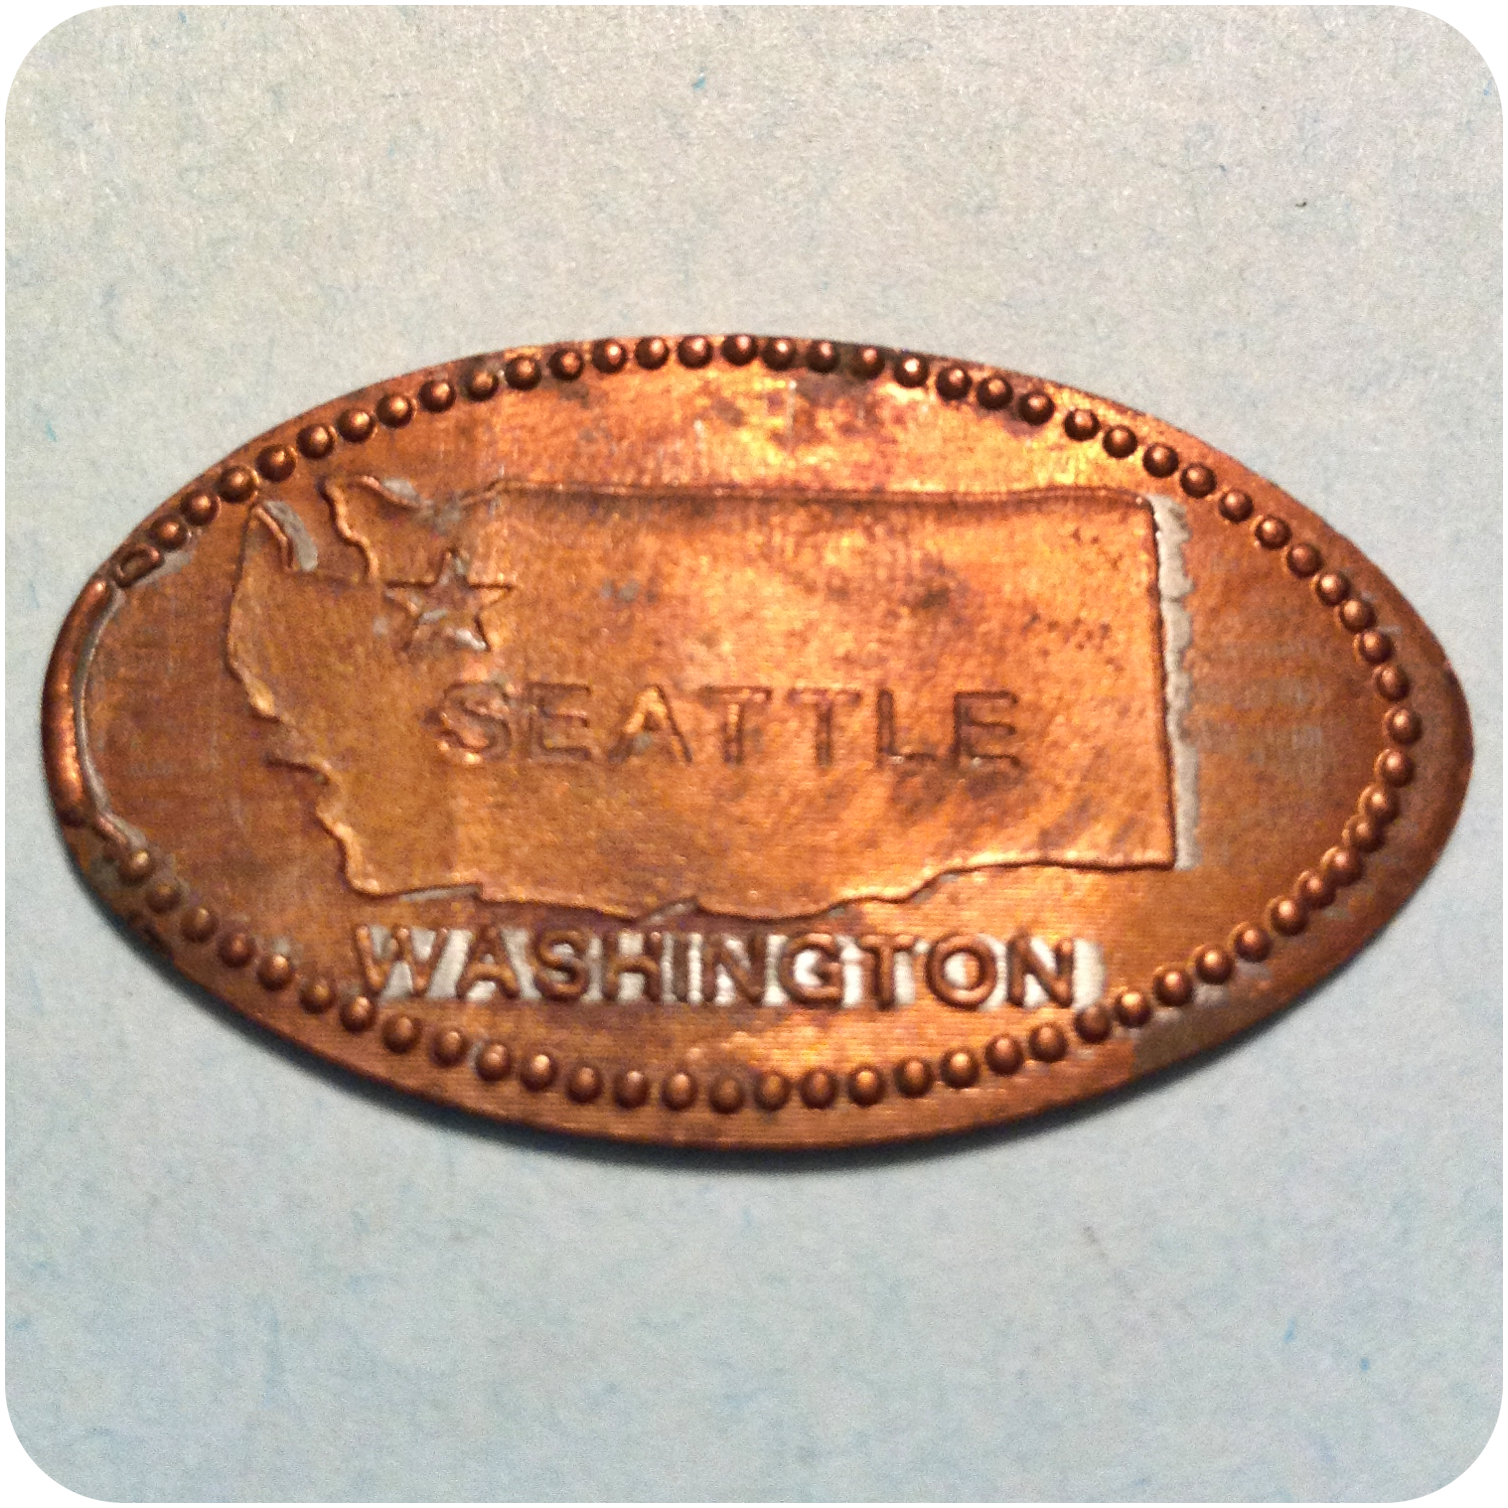 Retired The Armory (formerly Center House), Seattle Center, WA - Washington Coin